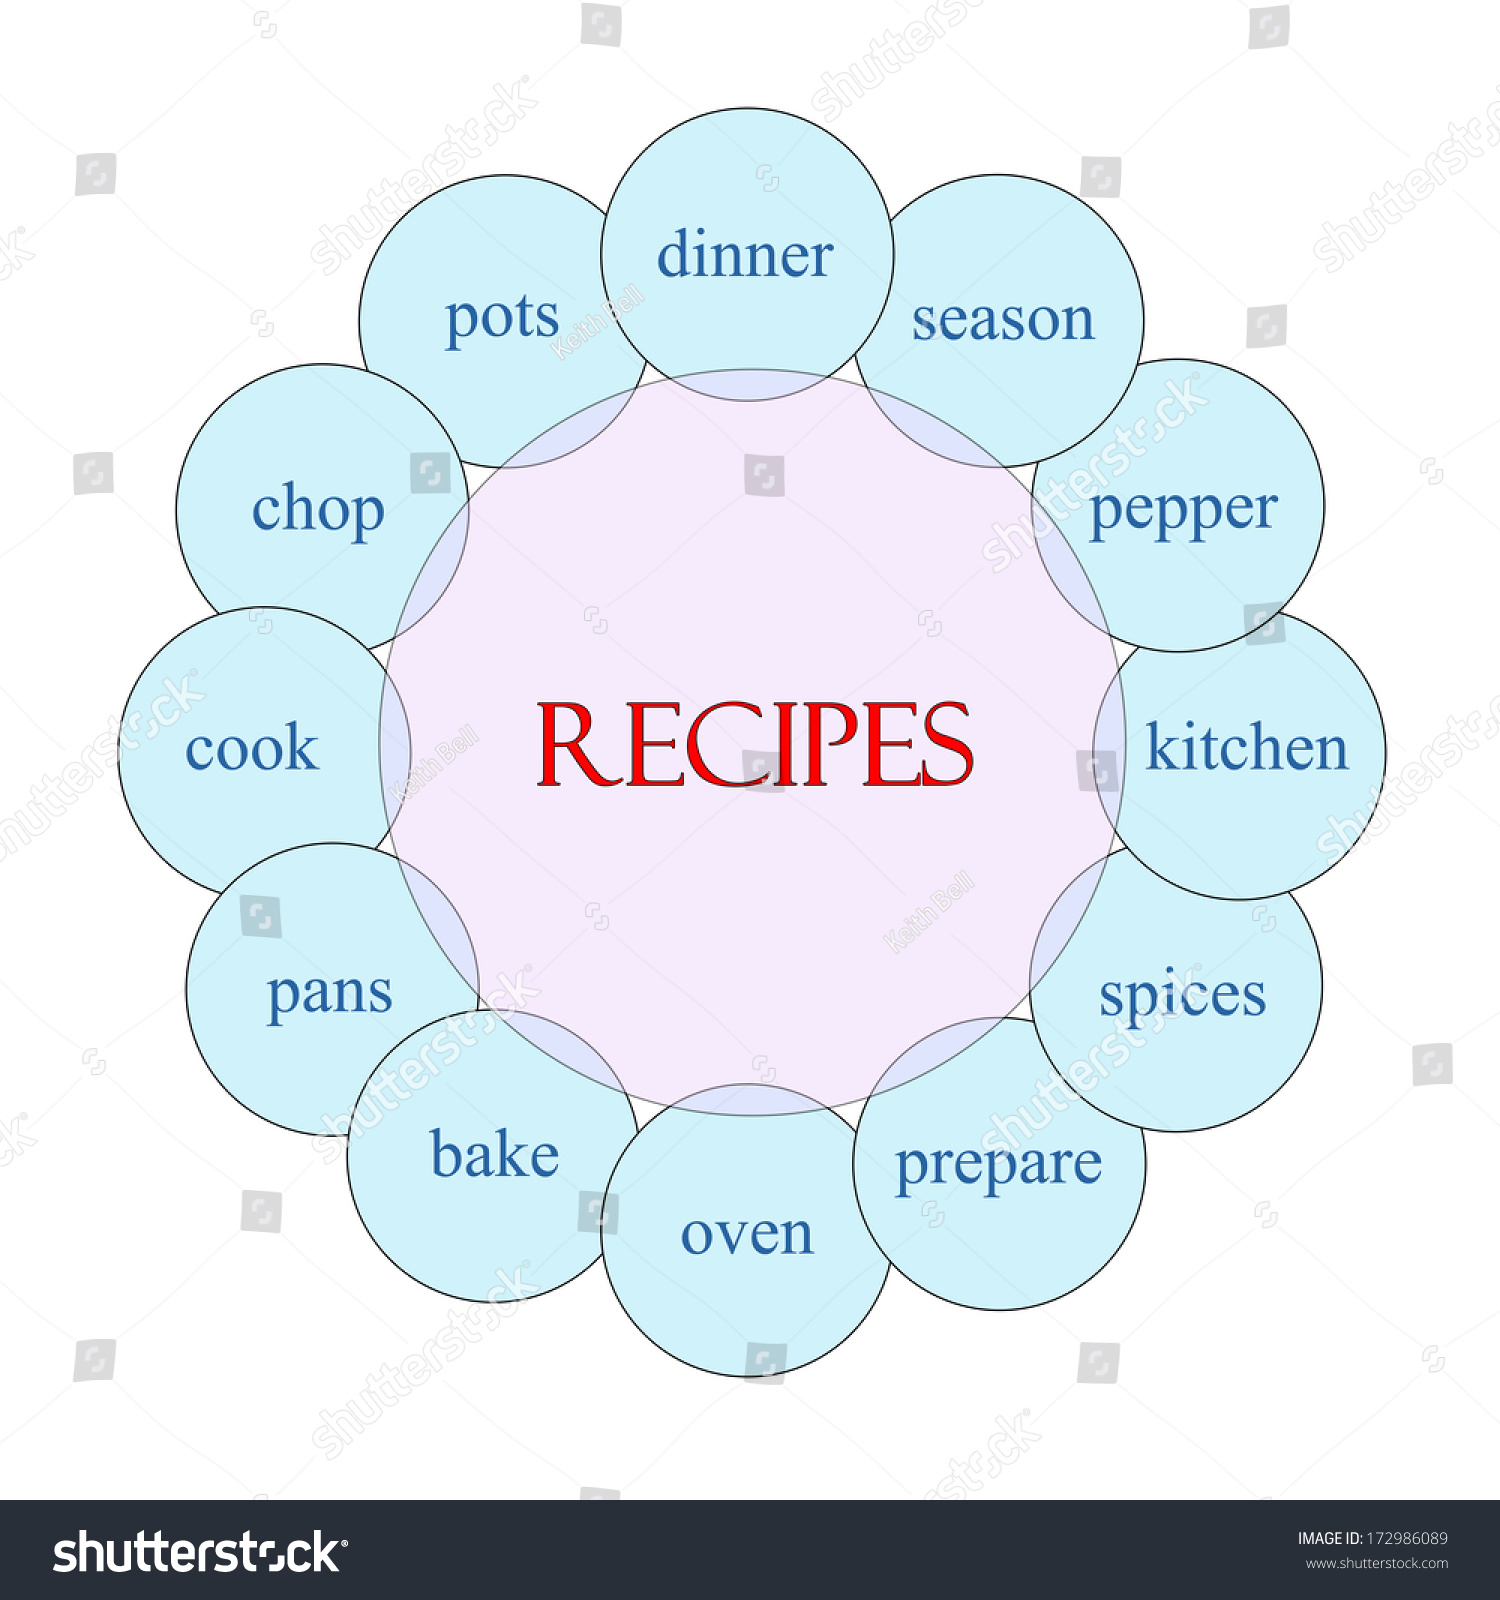 Recipes concept circular diagram pink blue stock illustration recipes concept circular diagram in pink and blue with great terms such as dinner season pooptronica Images